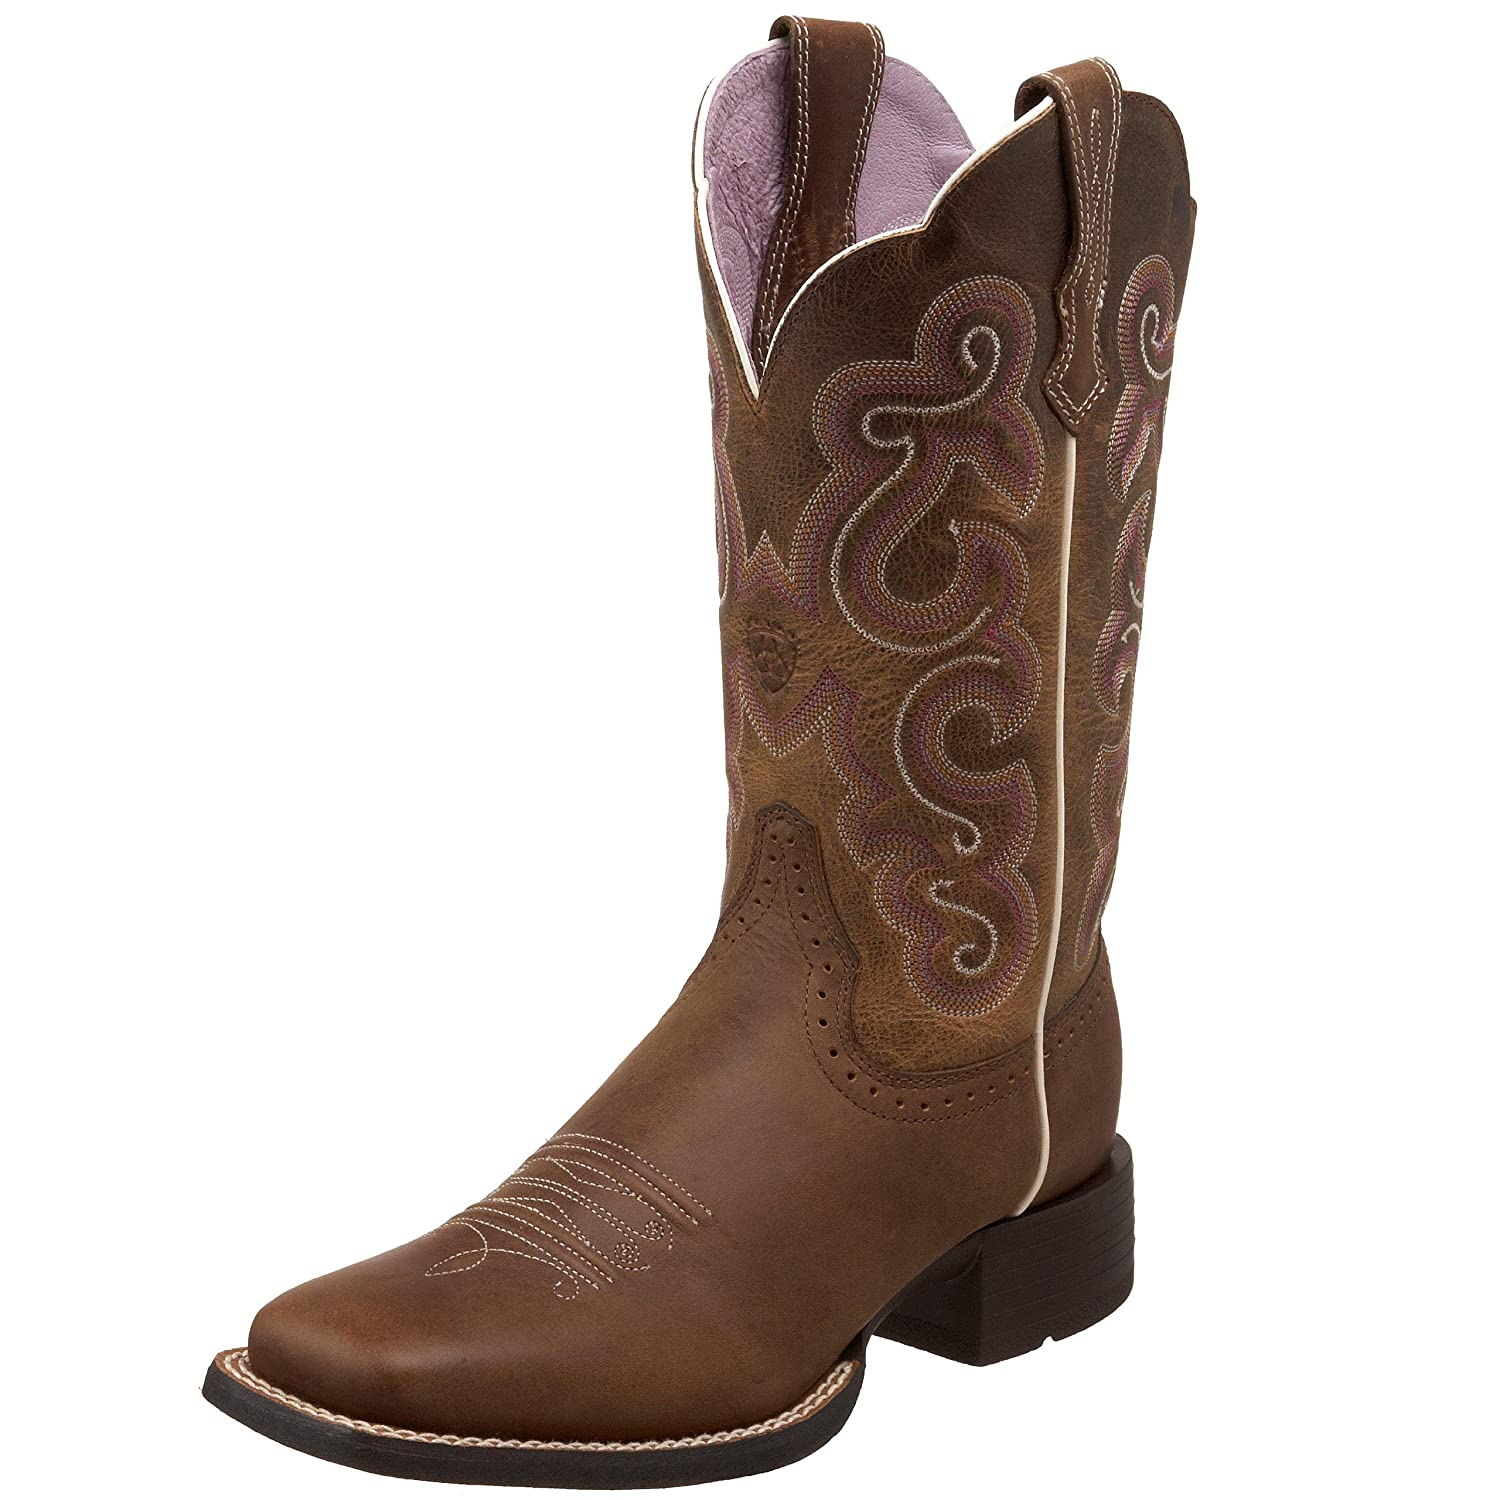 Ariat Women's Quickdraw Work Boot B0033WTAIK 8 B(M) US|Badlands Brown